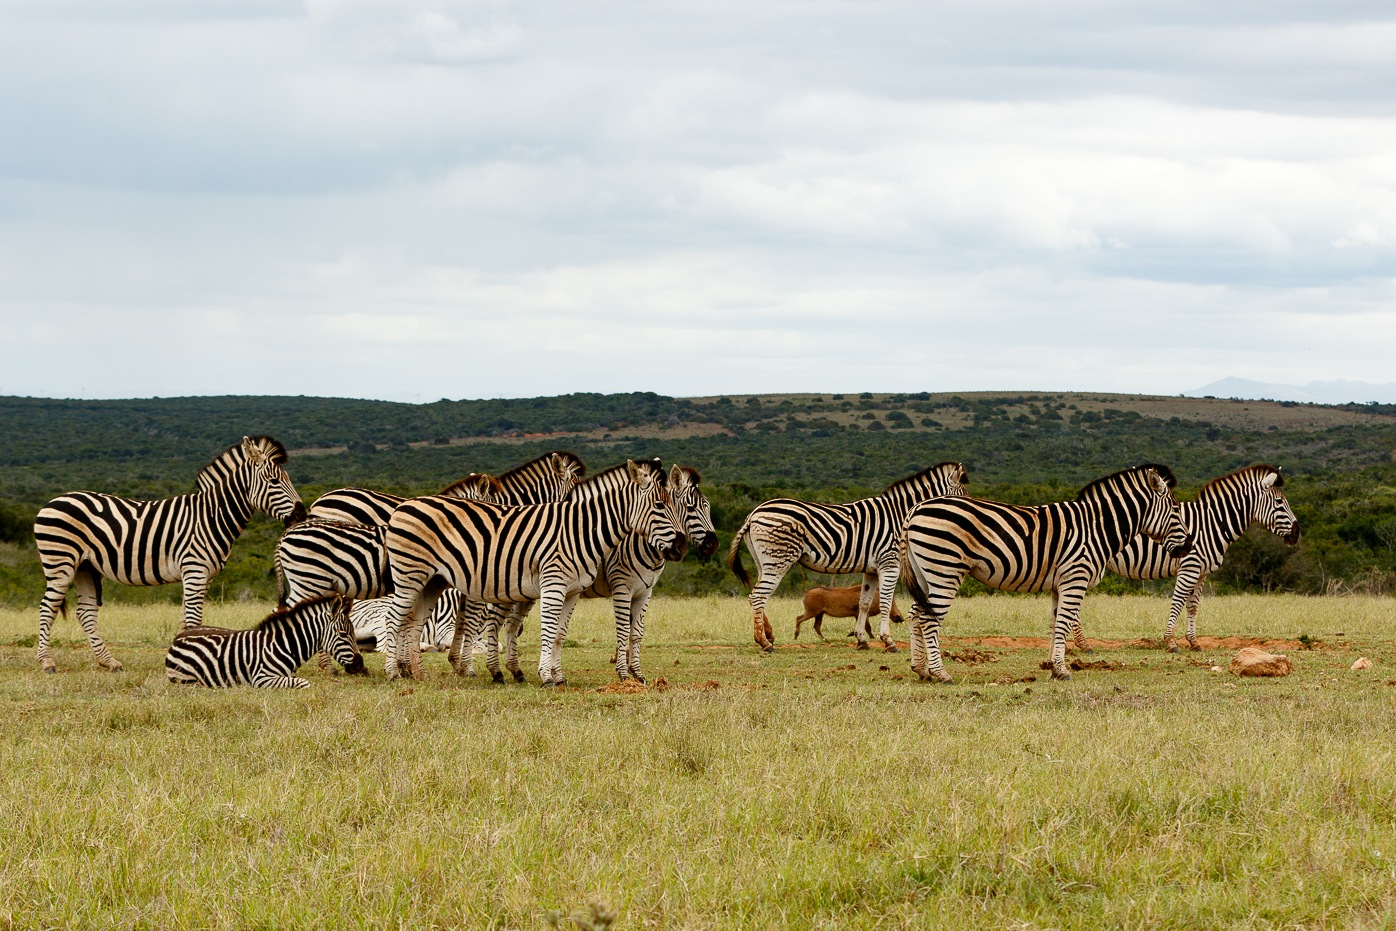 Zebras lining up for some water by Mark de Scande